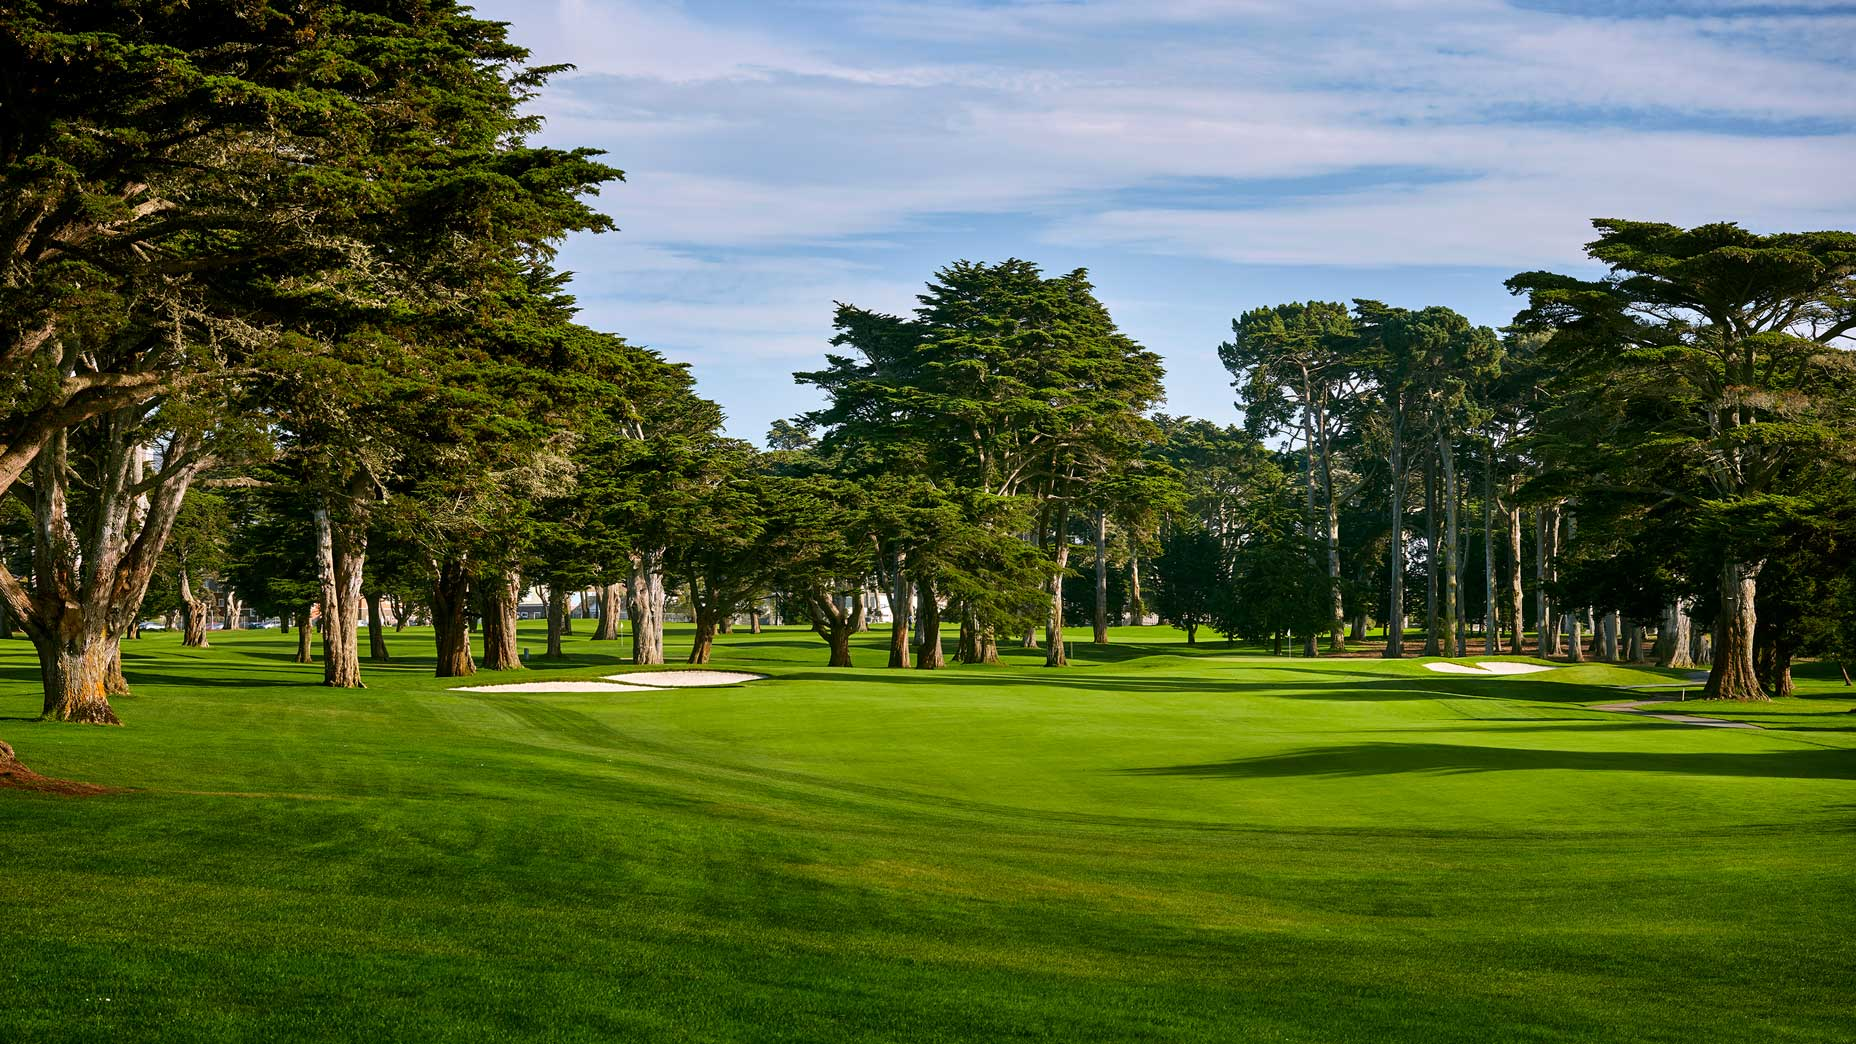 The 466-yard, par-4 2nd hole at TPC Harding Park in 2018.